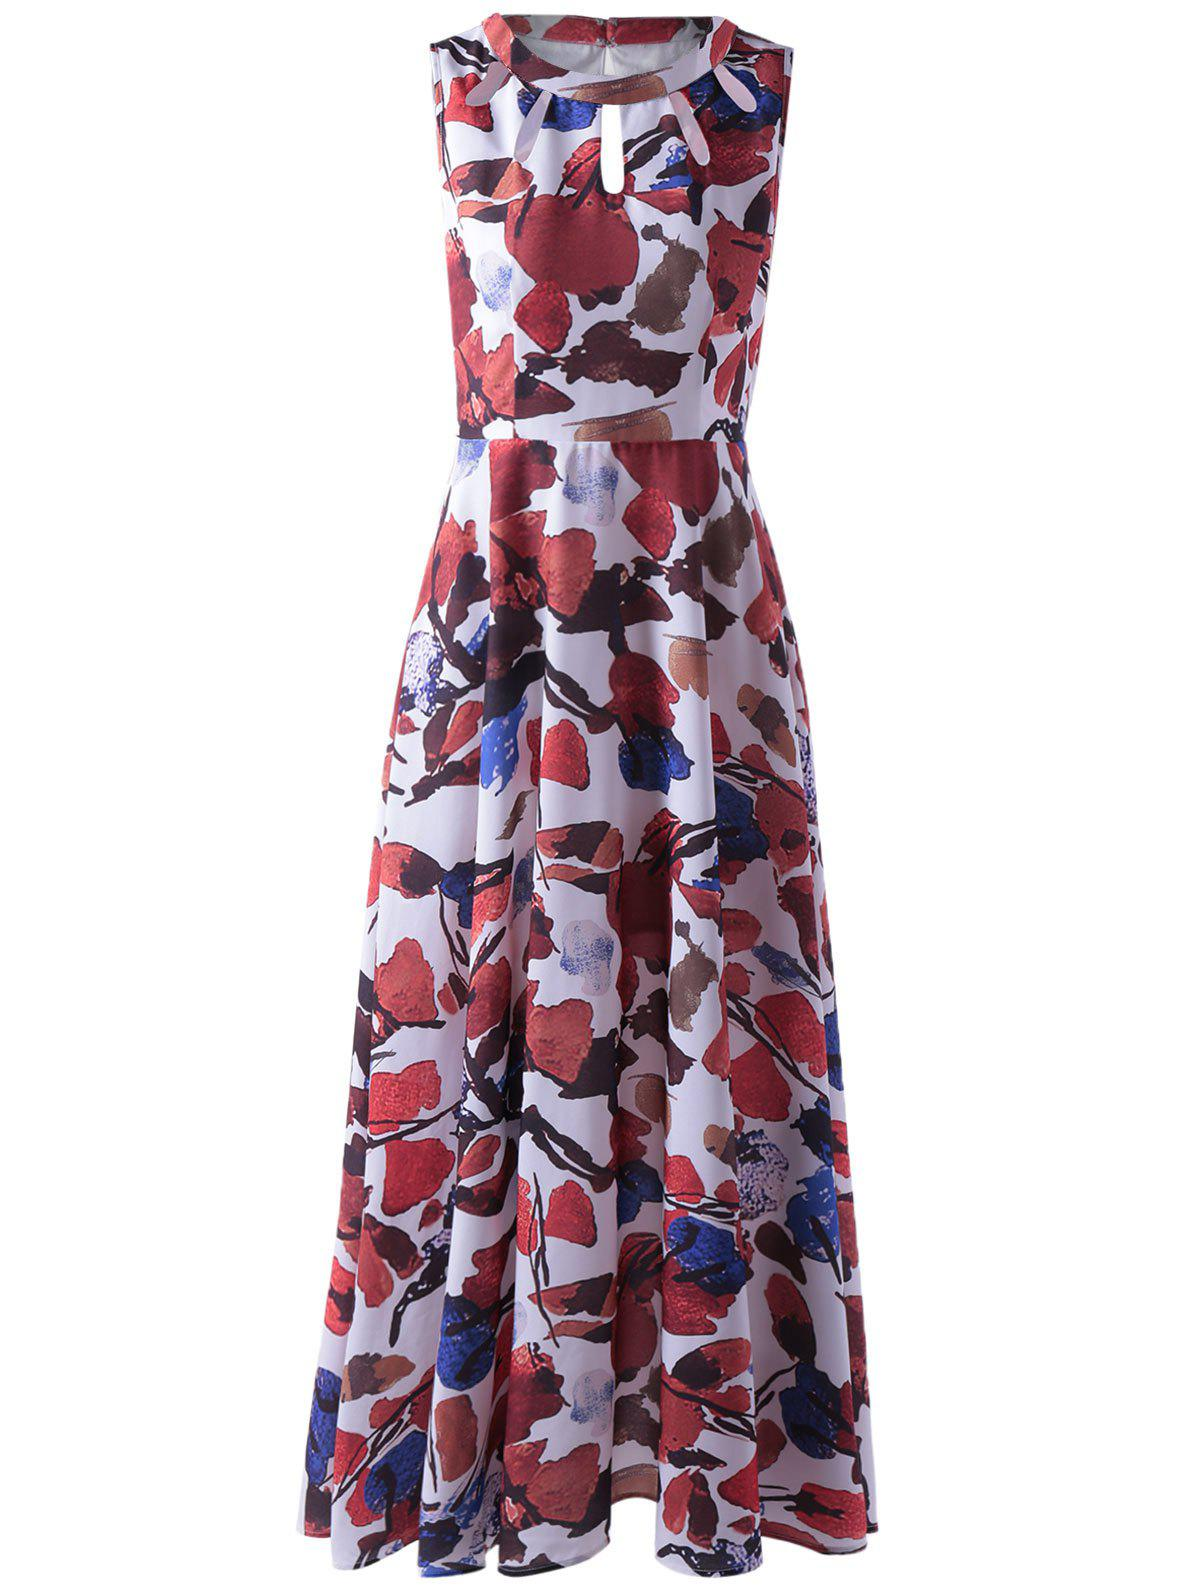 Fashionable Women's Sleeveless Abstract Print Cut Out Pleated Maxi Dress - COLORMIX S